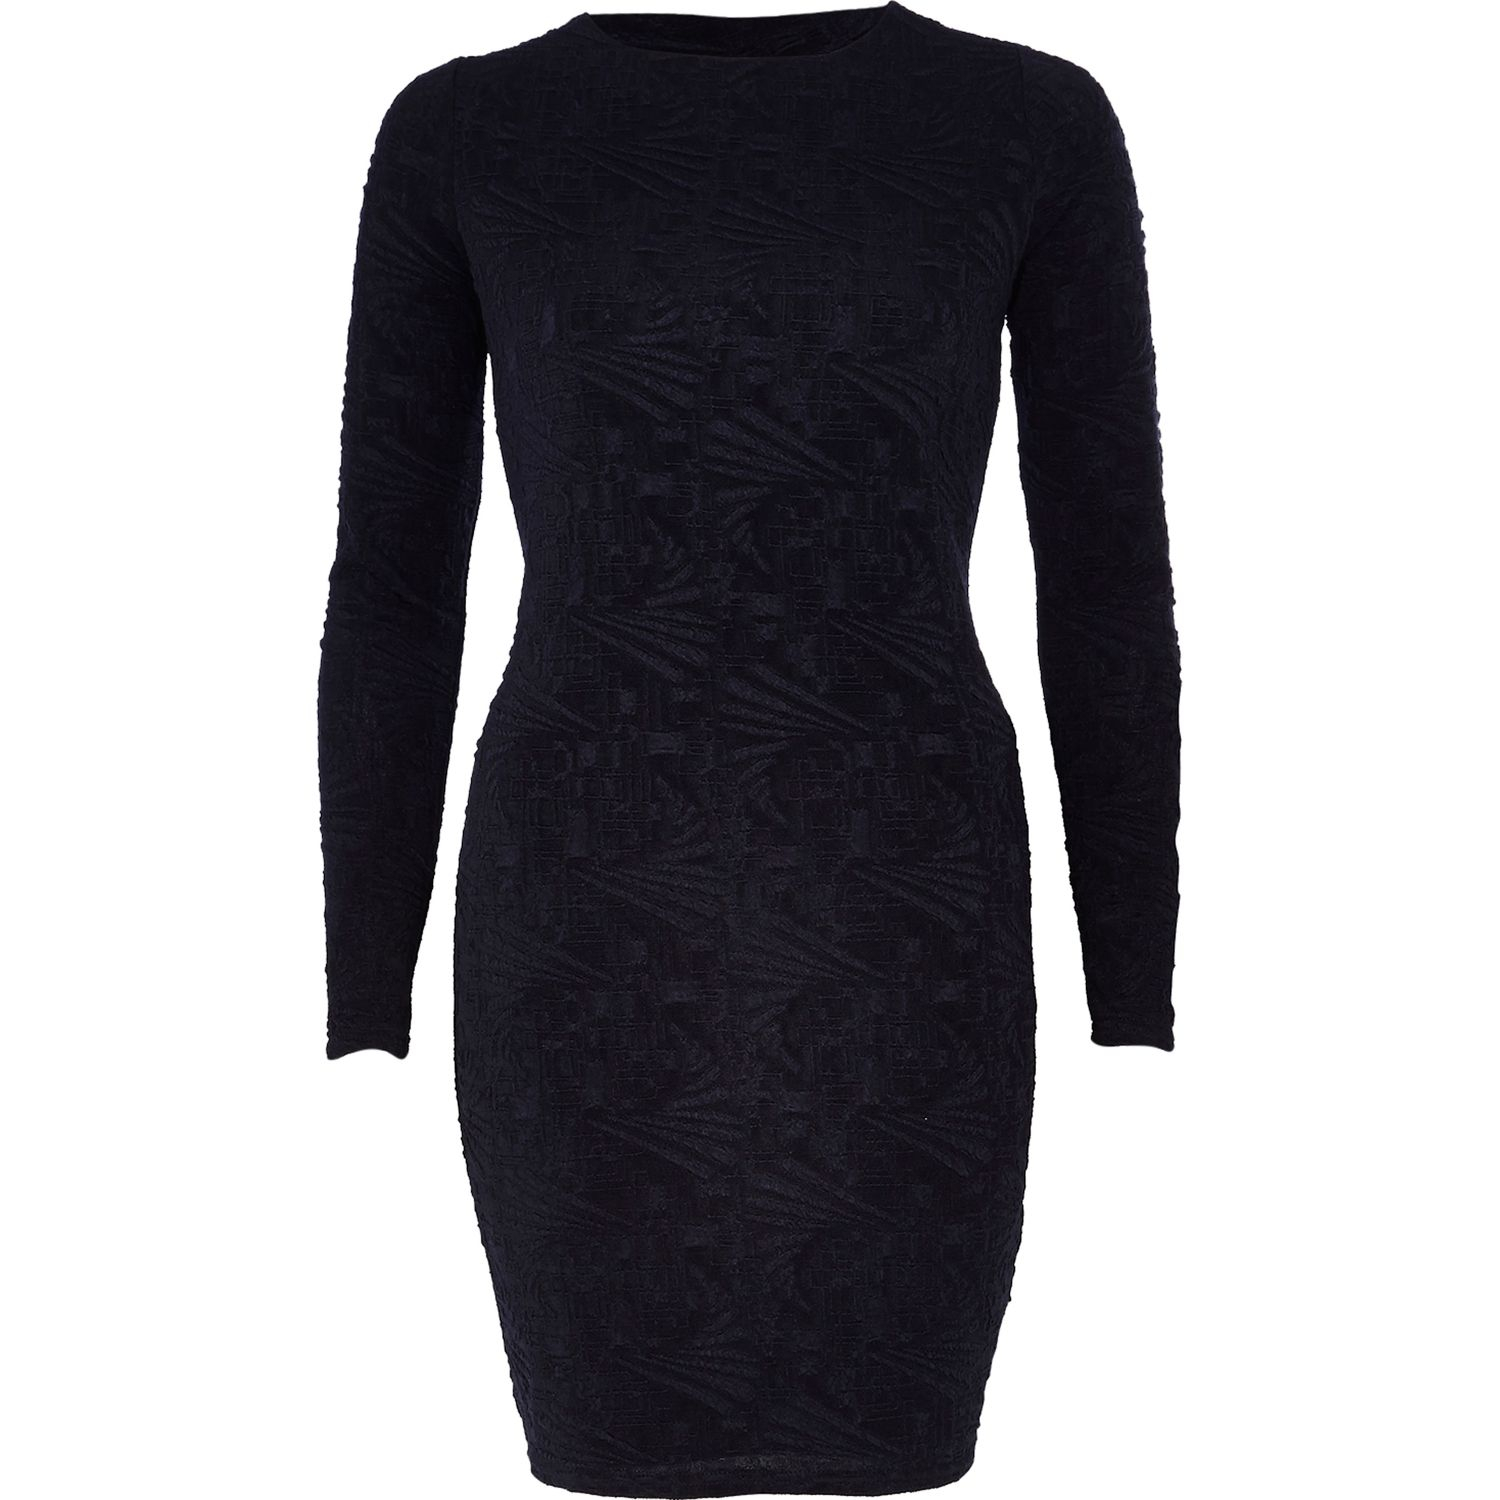 Navy Lace Bodycon Dress River Island